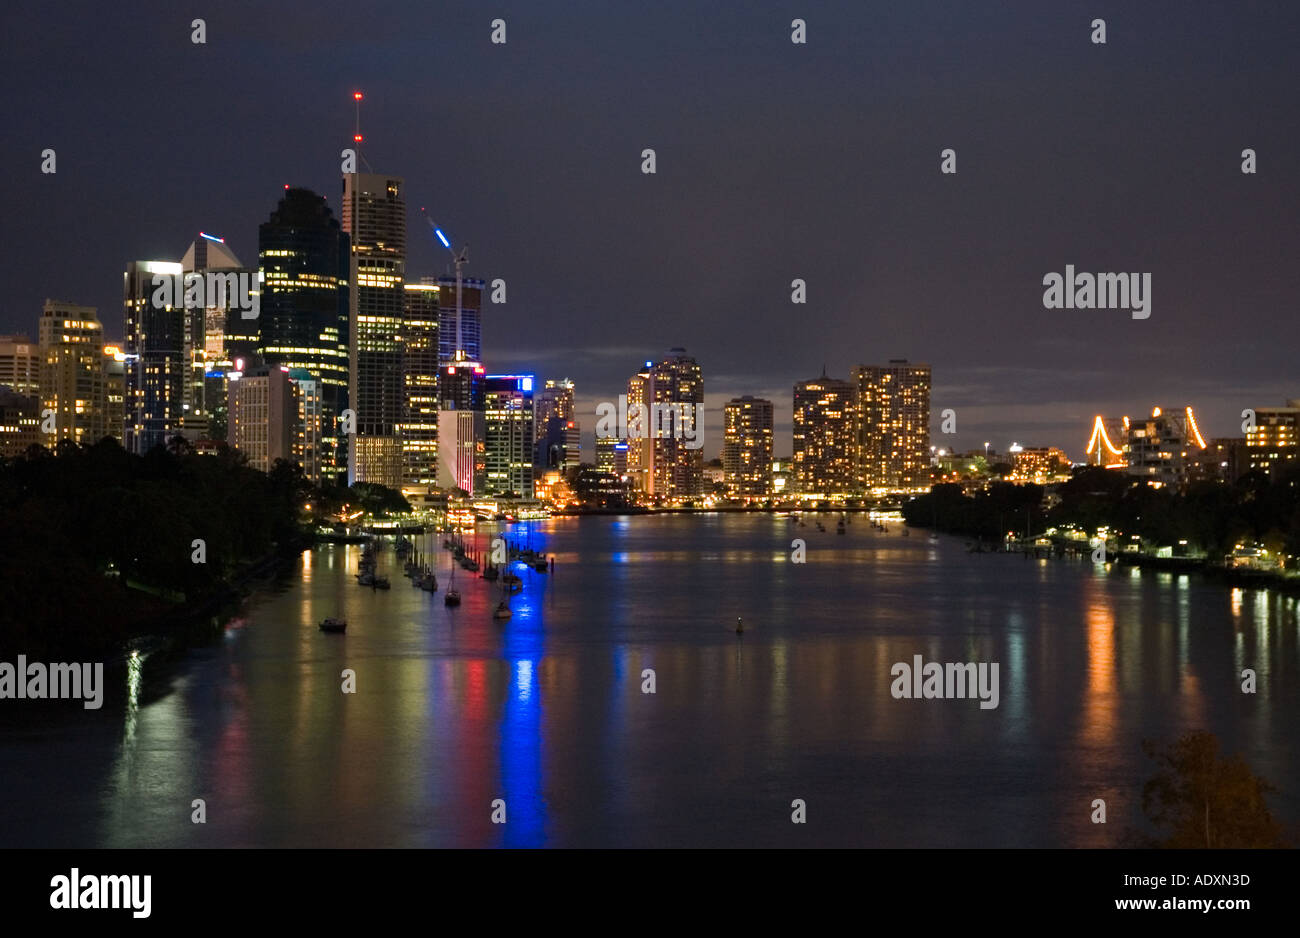 Brisbane at night 3756 - Stock Image